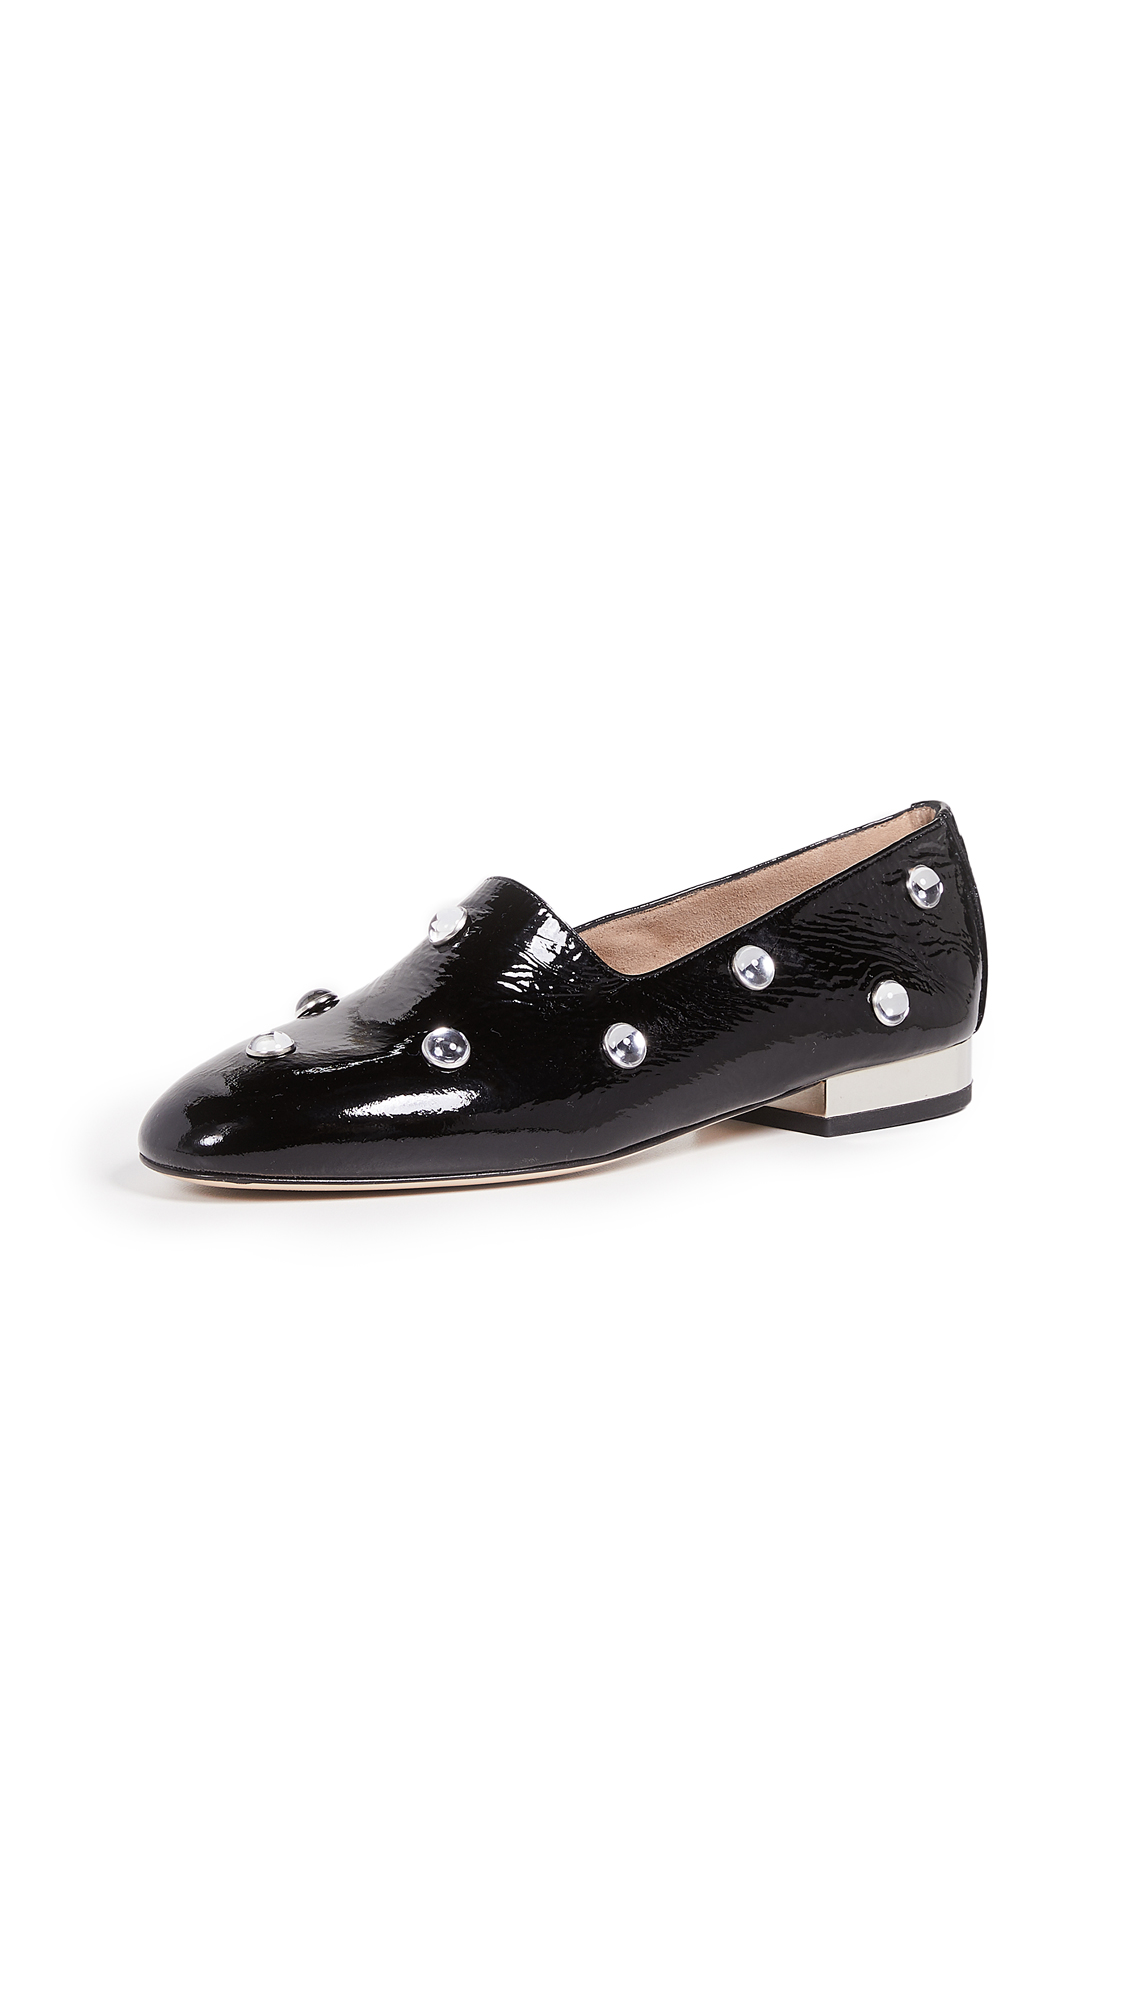 Paul Andrew Ive Stones Flats - Black